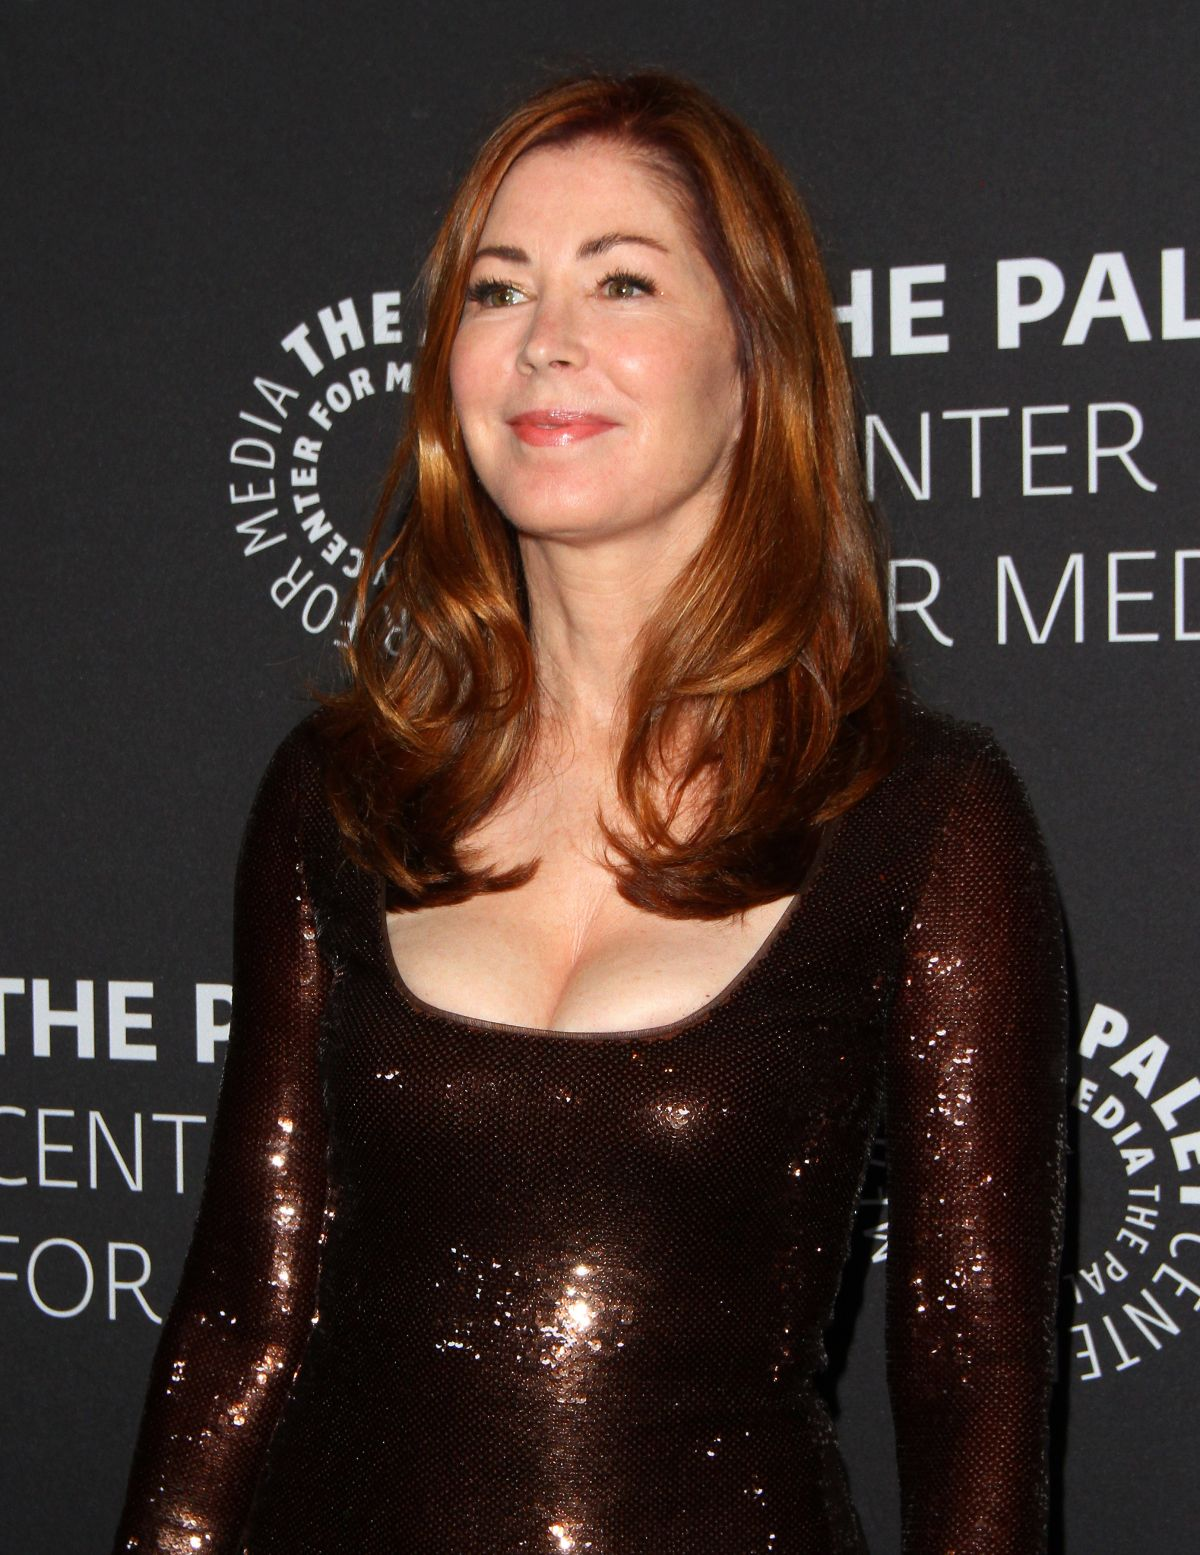 DANA DELANY at Paley Women in TV Gala in Los Angeles 10/12/2017